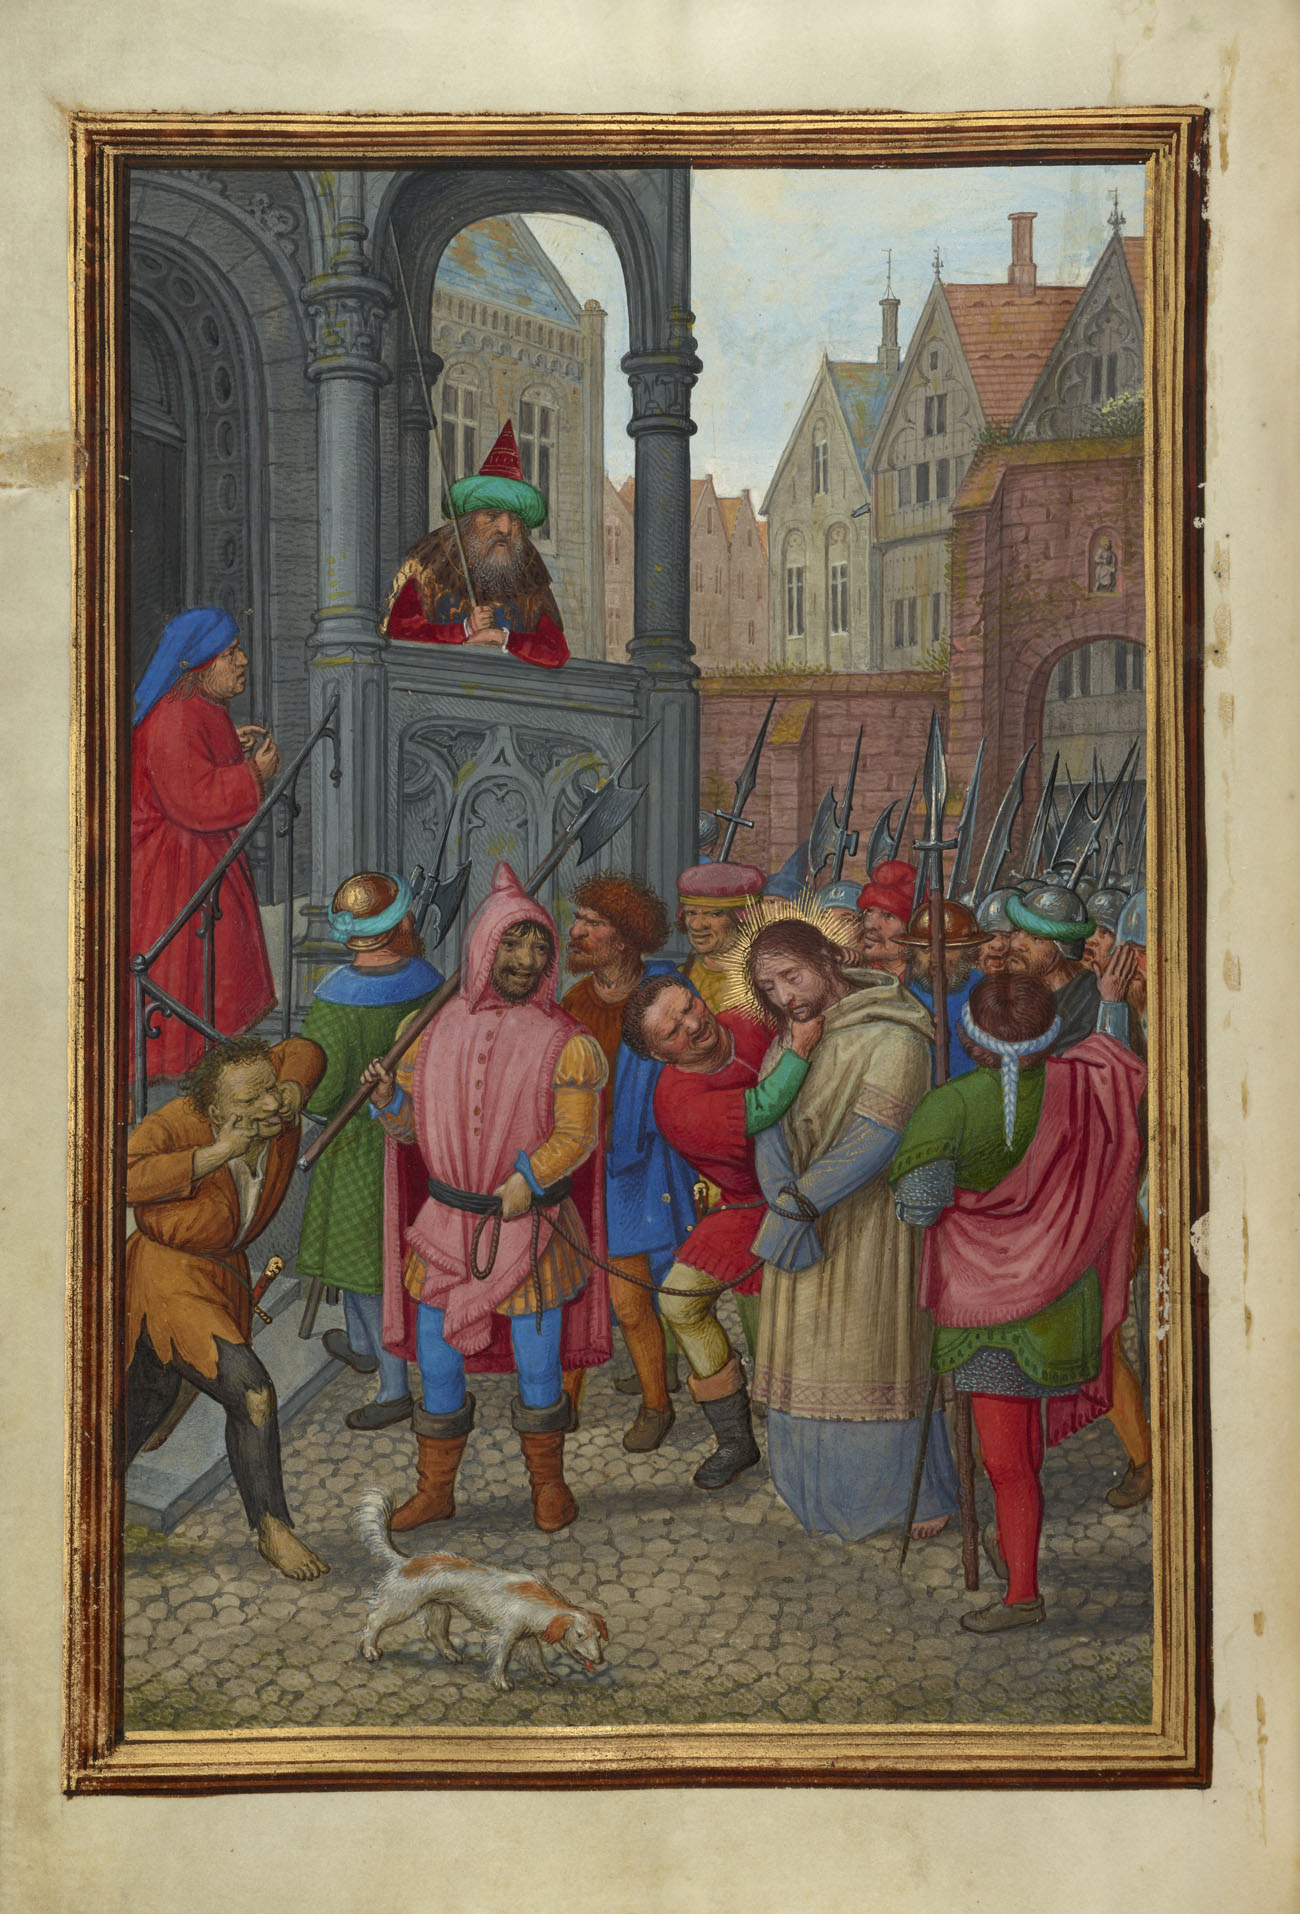 Christ Led from Herod to Pilate, about 1483–1561, Simon Bening. Tempera colors, gold paint, and gold leaf on parchment; 6 5/8 x 4 1/2 in. J. Paul Getty Museum, Ms. Ludwig IX 19, fol. 147v